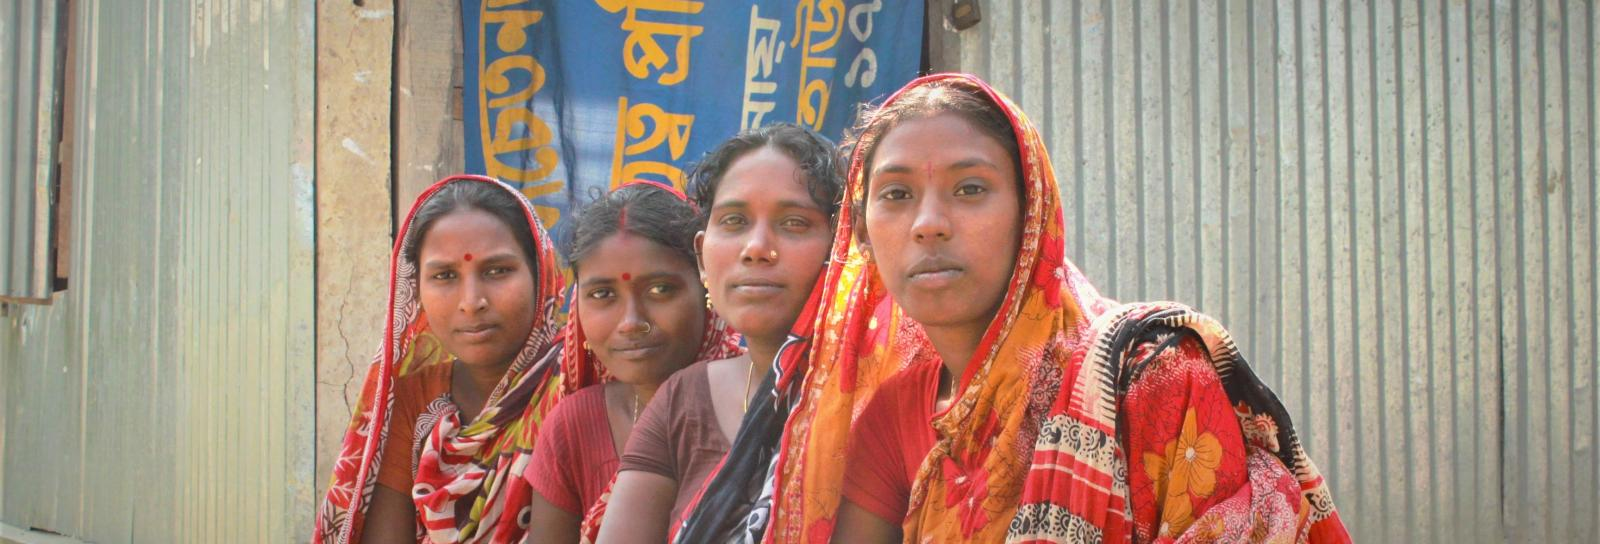 Four mothers of young children in Bangladesh